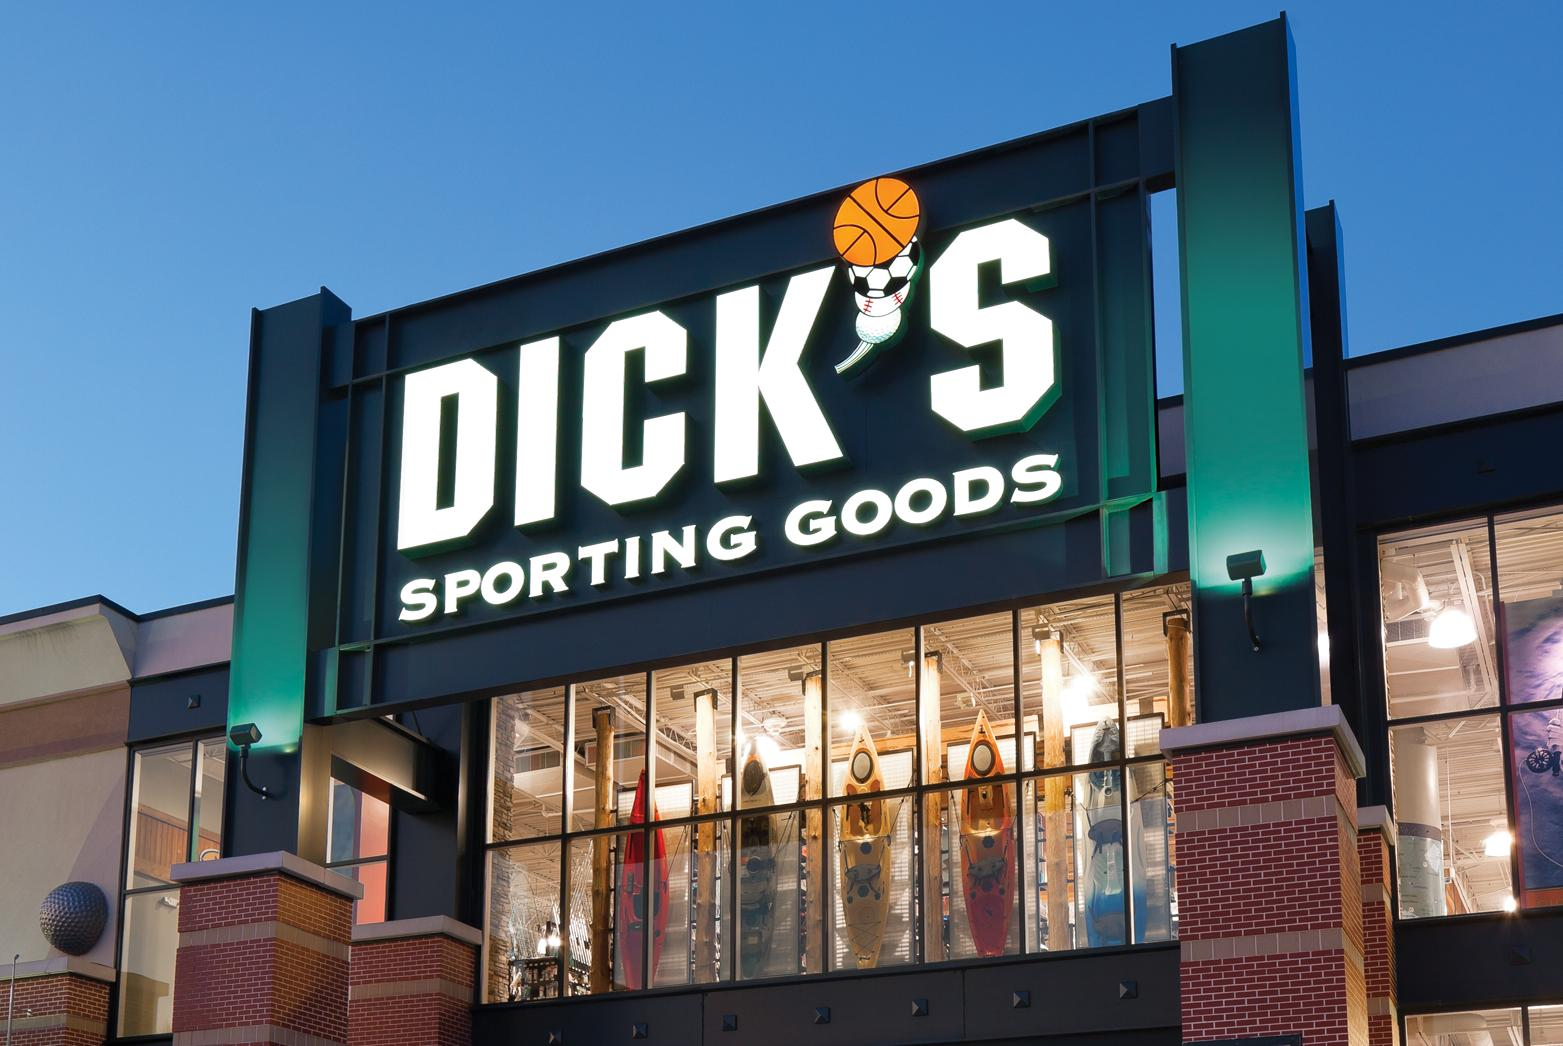 DICK'S Sporting Goods presents a story about a family, a table tennis table and the life that happens in between. This holiday season, give a gift that lasts algebracapacitywt.tk: M.